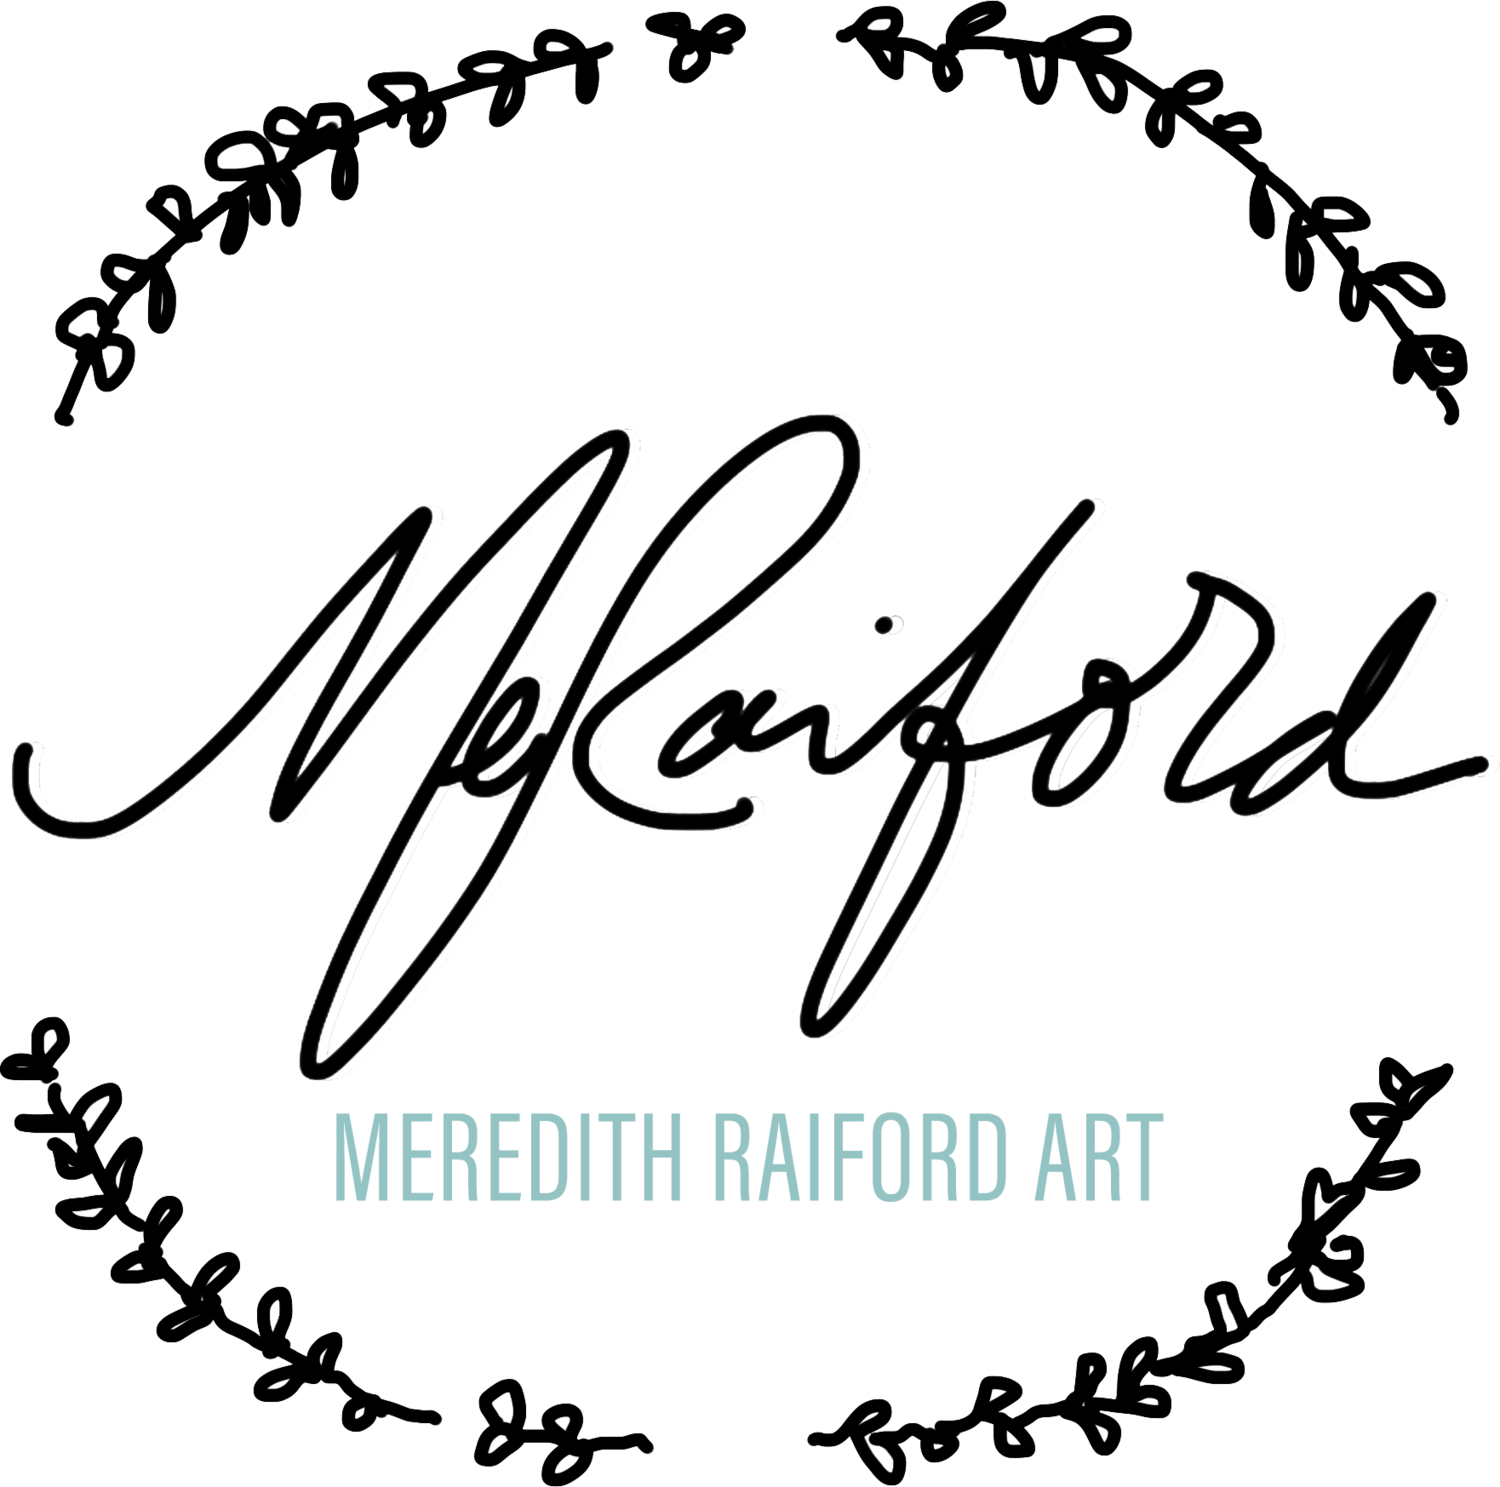 Meredith Raiford Art